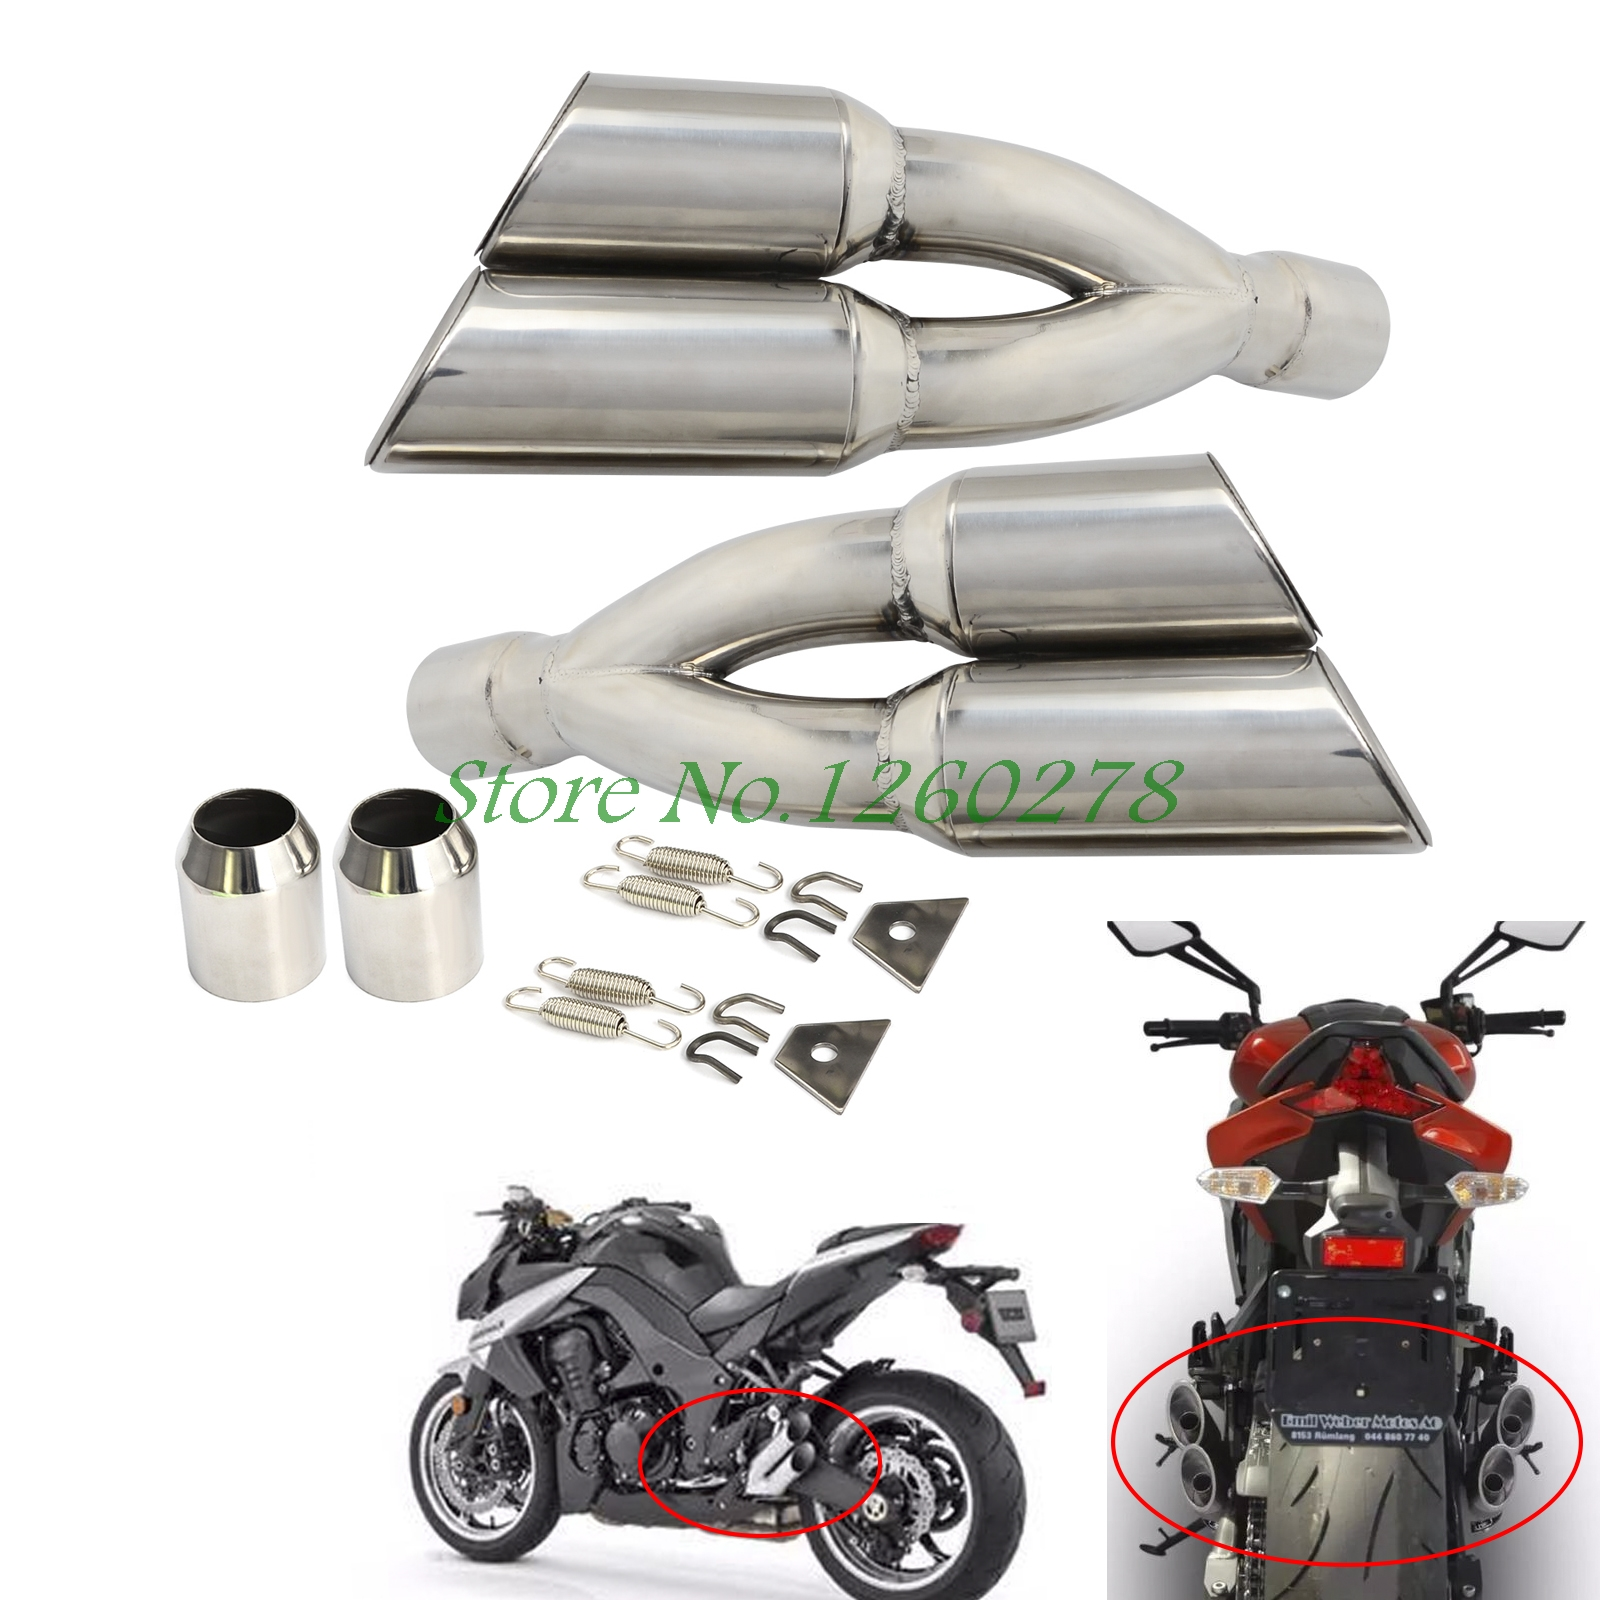 Universal Dual Exhaust Muffler Pipe Slip On For Motorcycle Motocross Supermoto Street Bike Scooter ATV Quad Dirt Bike Off Road dwcx motorcycle adjustable chain tensioner bolt on roller motocross for harley honda dirt street bike atv banshee suzuki chopper